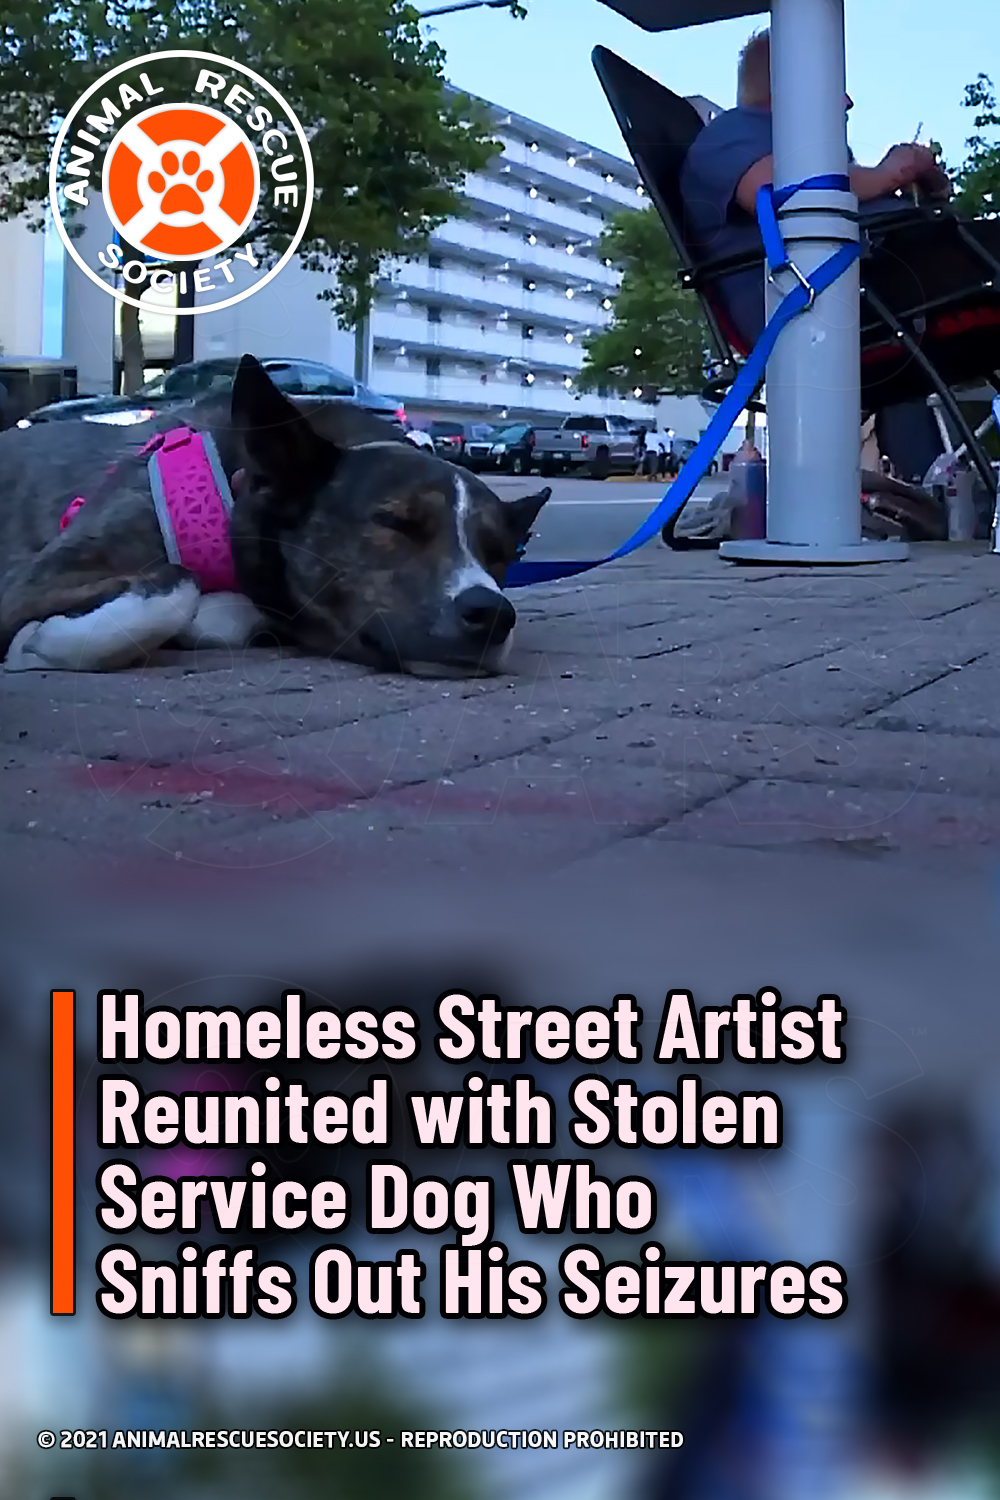 Homeless Street Artist Reunited with Stolen Service Dog Who Sniffs Out His Seizures